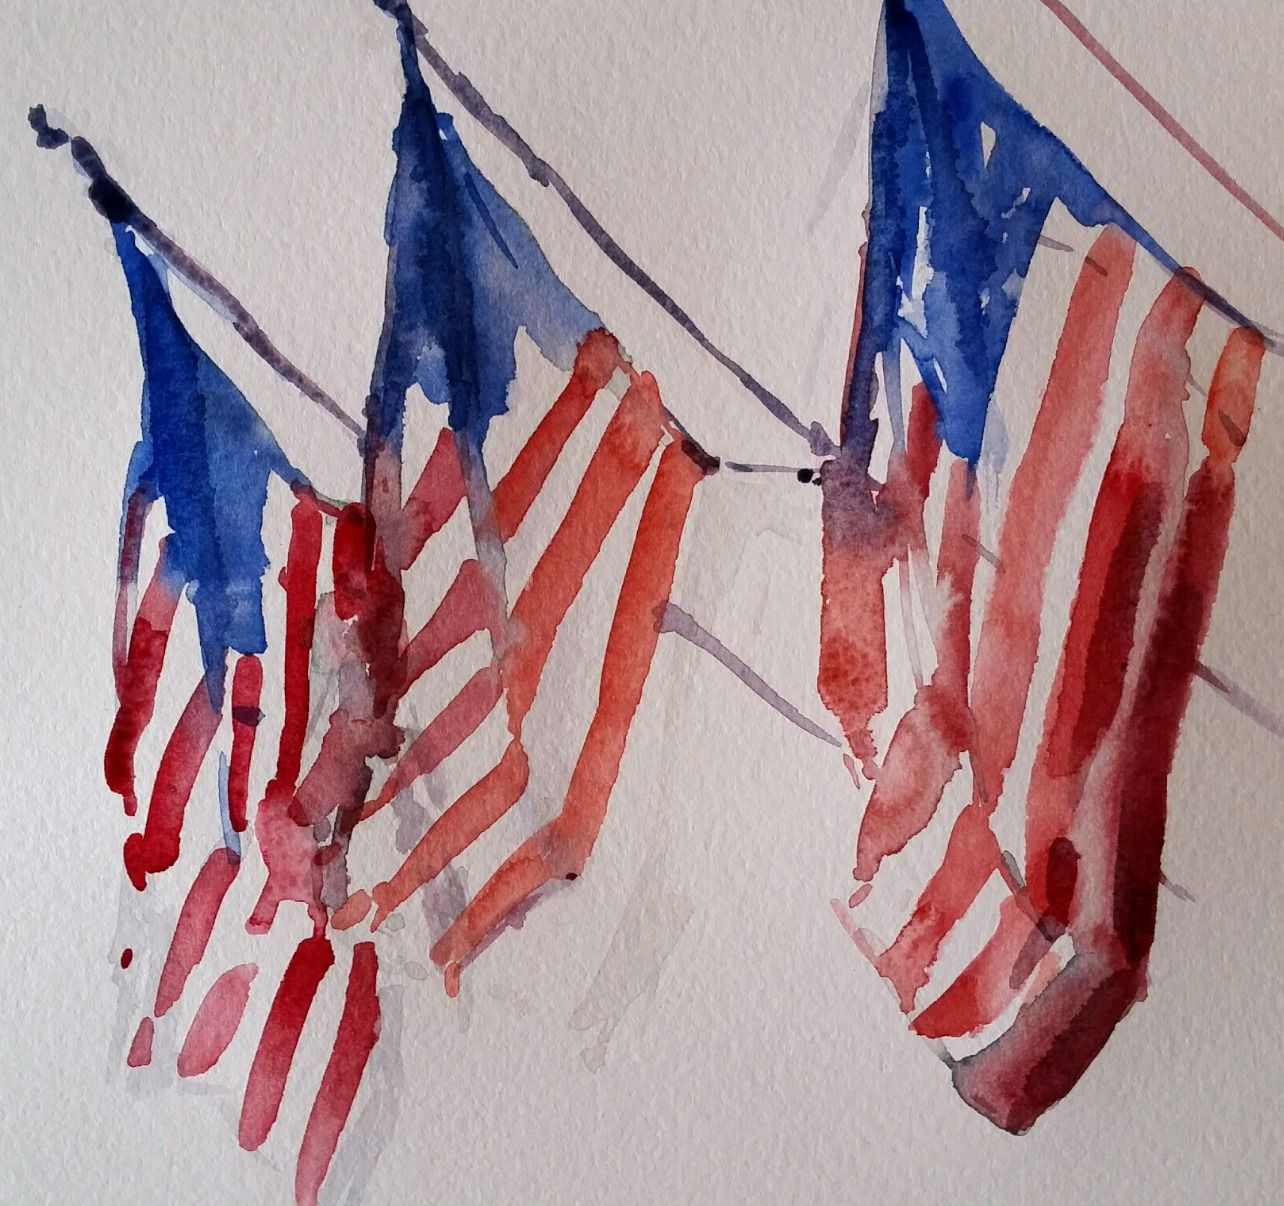 1284x1206 Image Result For Watercolor Pics Of The American Flag 4th 0f